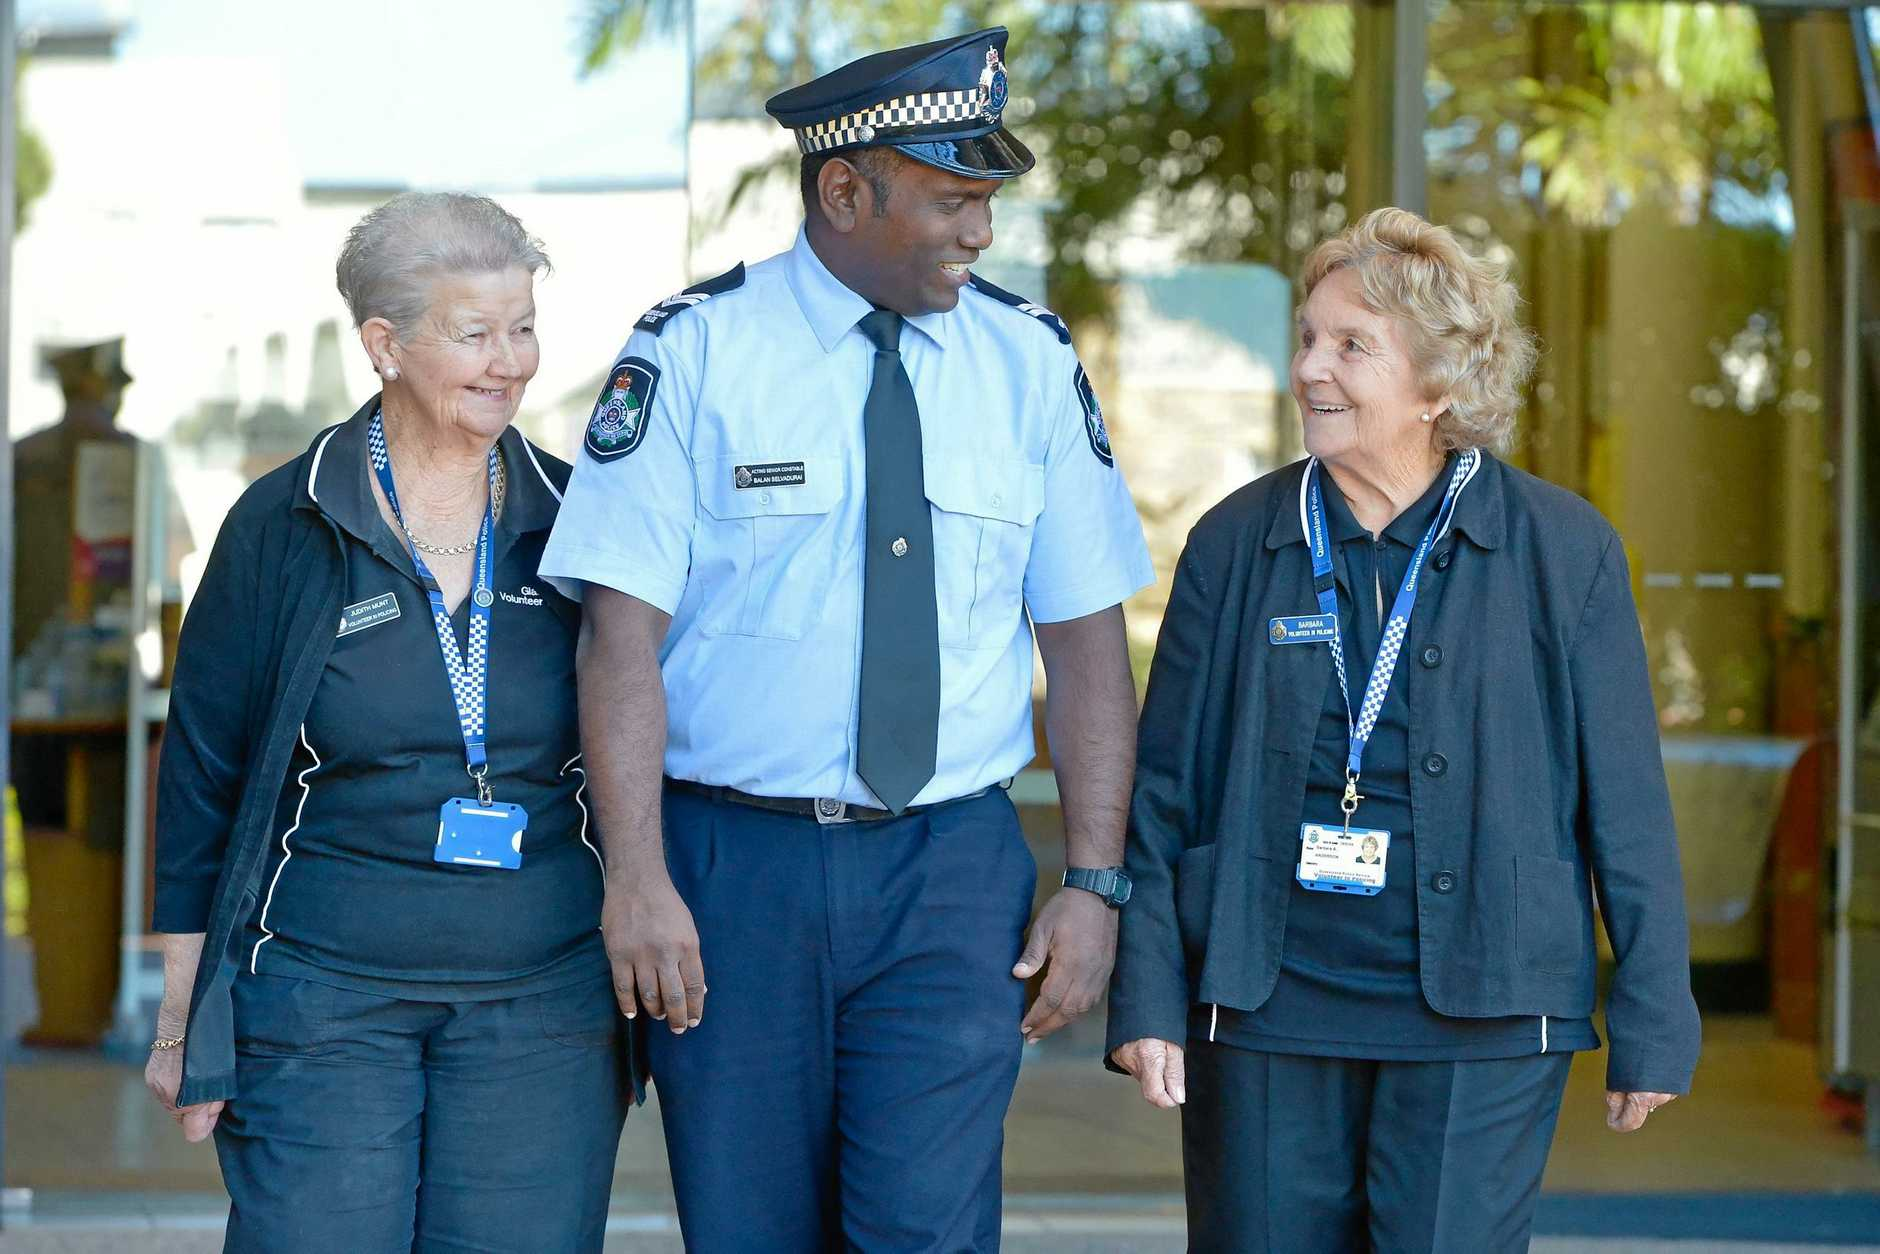 HELPING OUT: Volunteers in Policing Judith Munt (left) and Barbara Anderson (right) with police prosecutor Acting Senior Constable Balan Selvadurai.